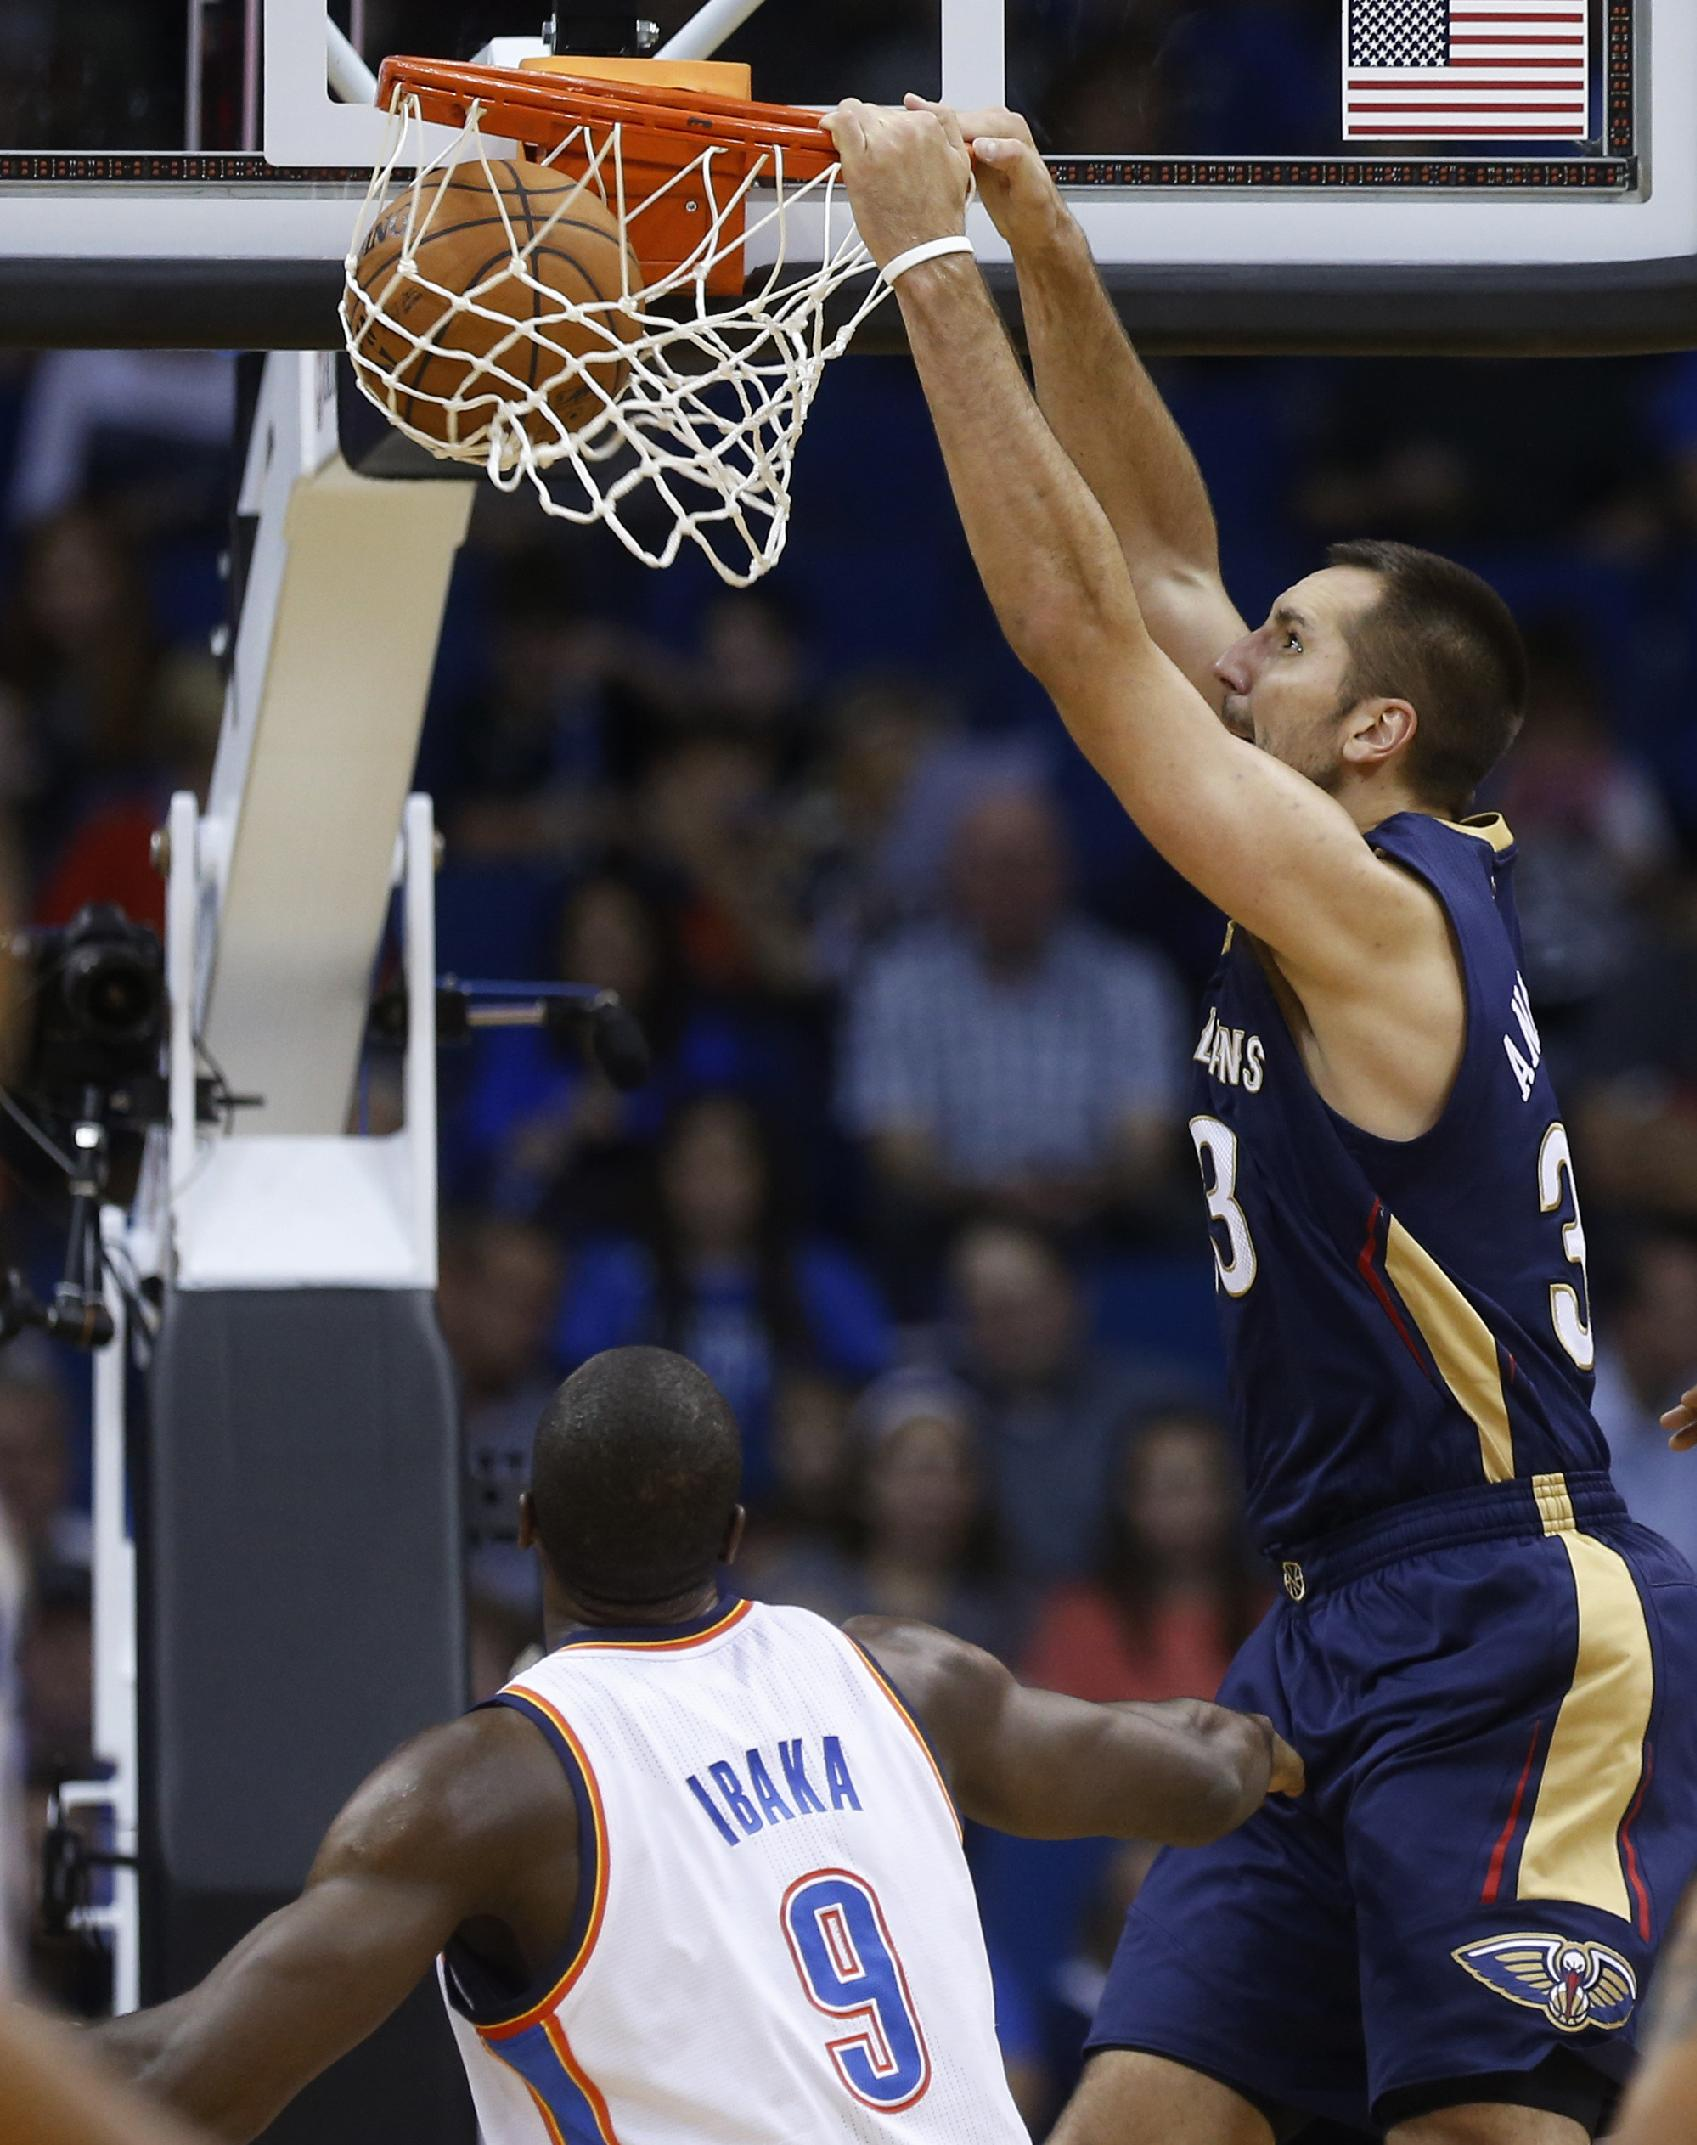 New Orleans Pelicans forward Ryan Anderson (33) dunks in front of Oklahoma City Thunder forward Serge Ibaka (9) in the third quarter of an NBA basketball preseason game in Tulsa, Okla., Thursday, Oct. 17, 2013. New Orleans won 105-102